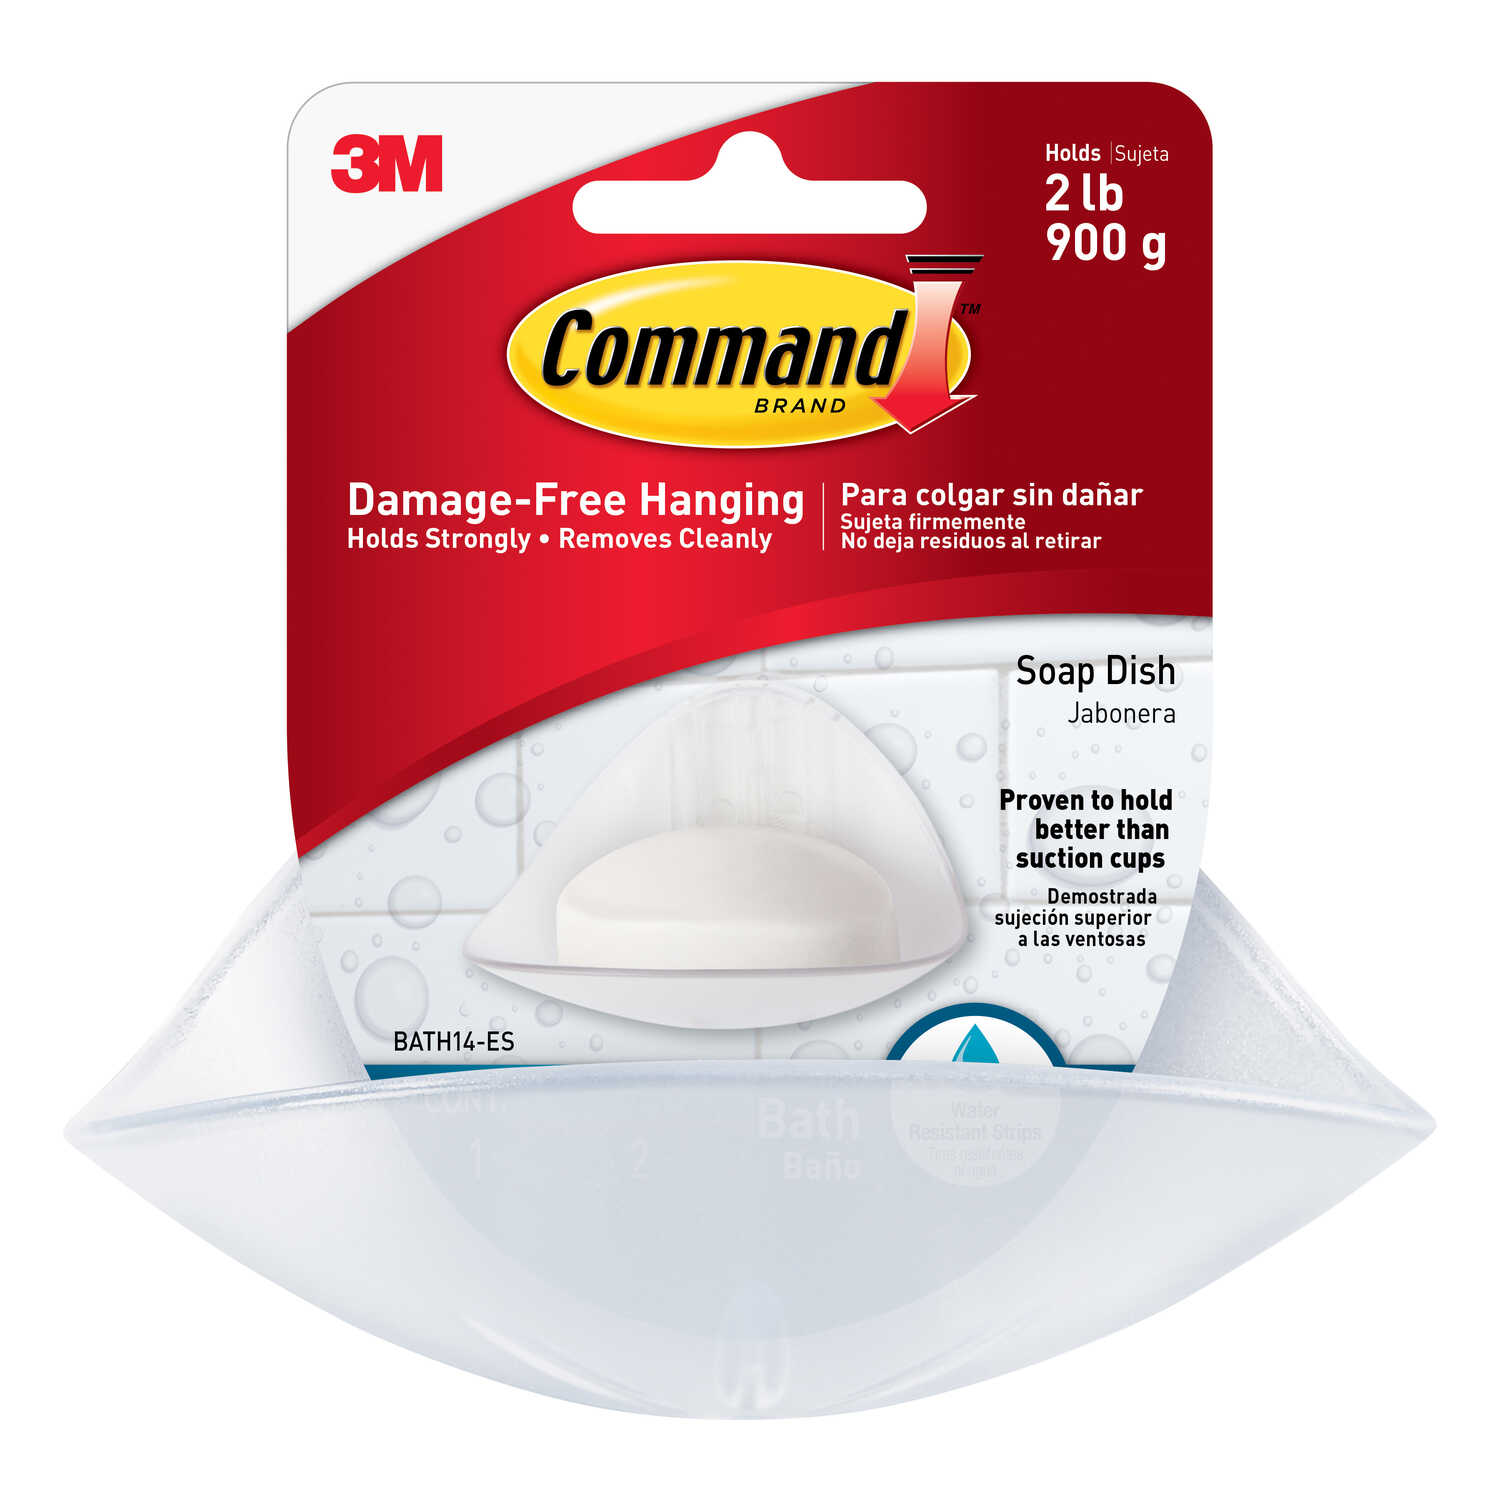 3M  Command  Soap Dish  3.125 in. H x 4.125 inch  W x 4.875 in. L Frost  Clear Frosted  Plastic